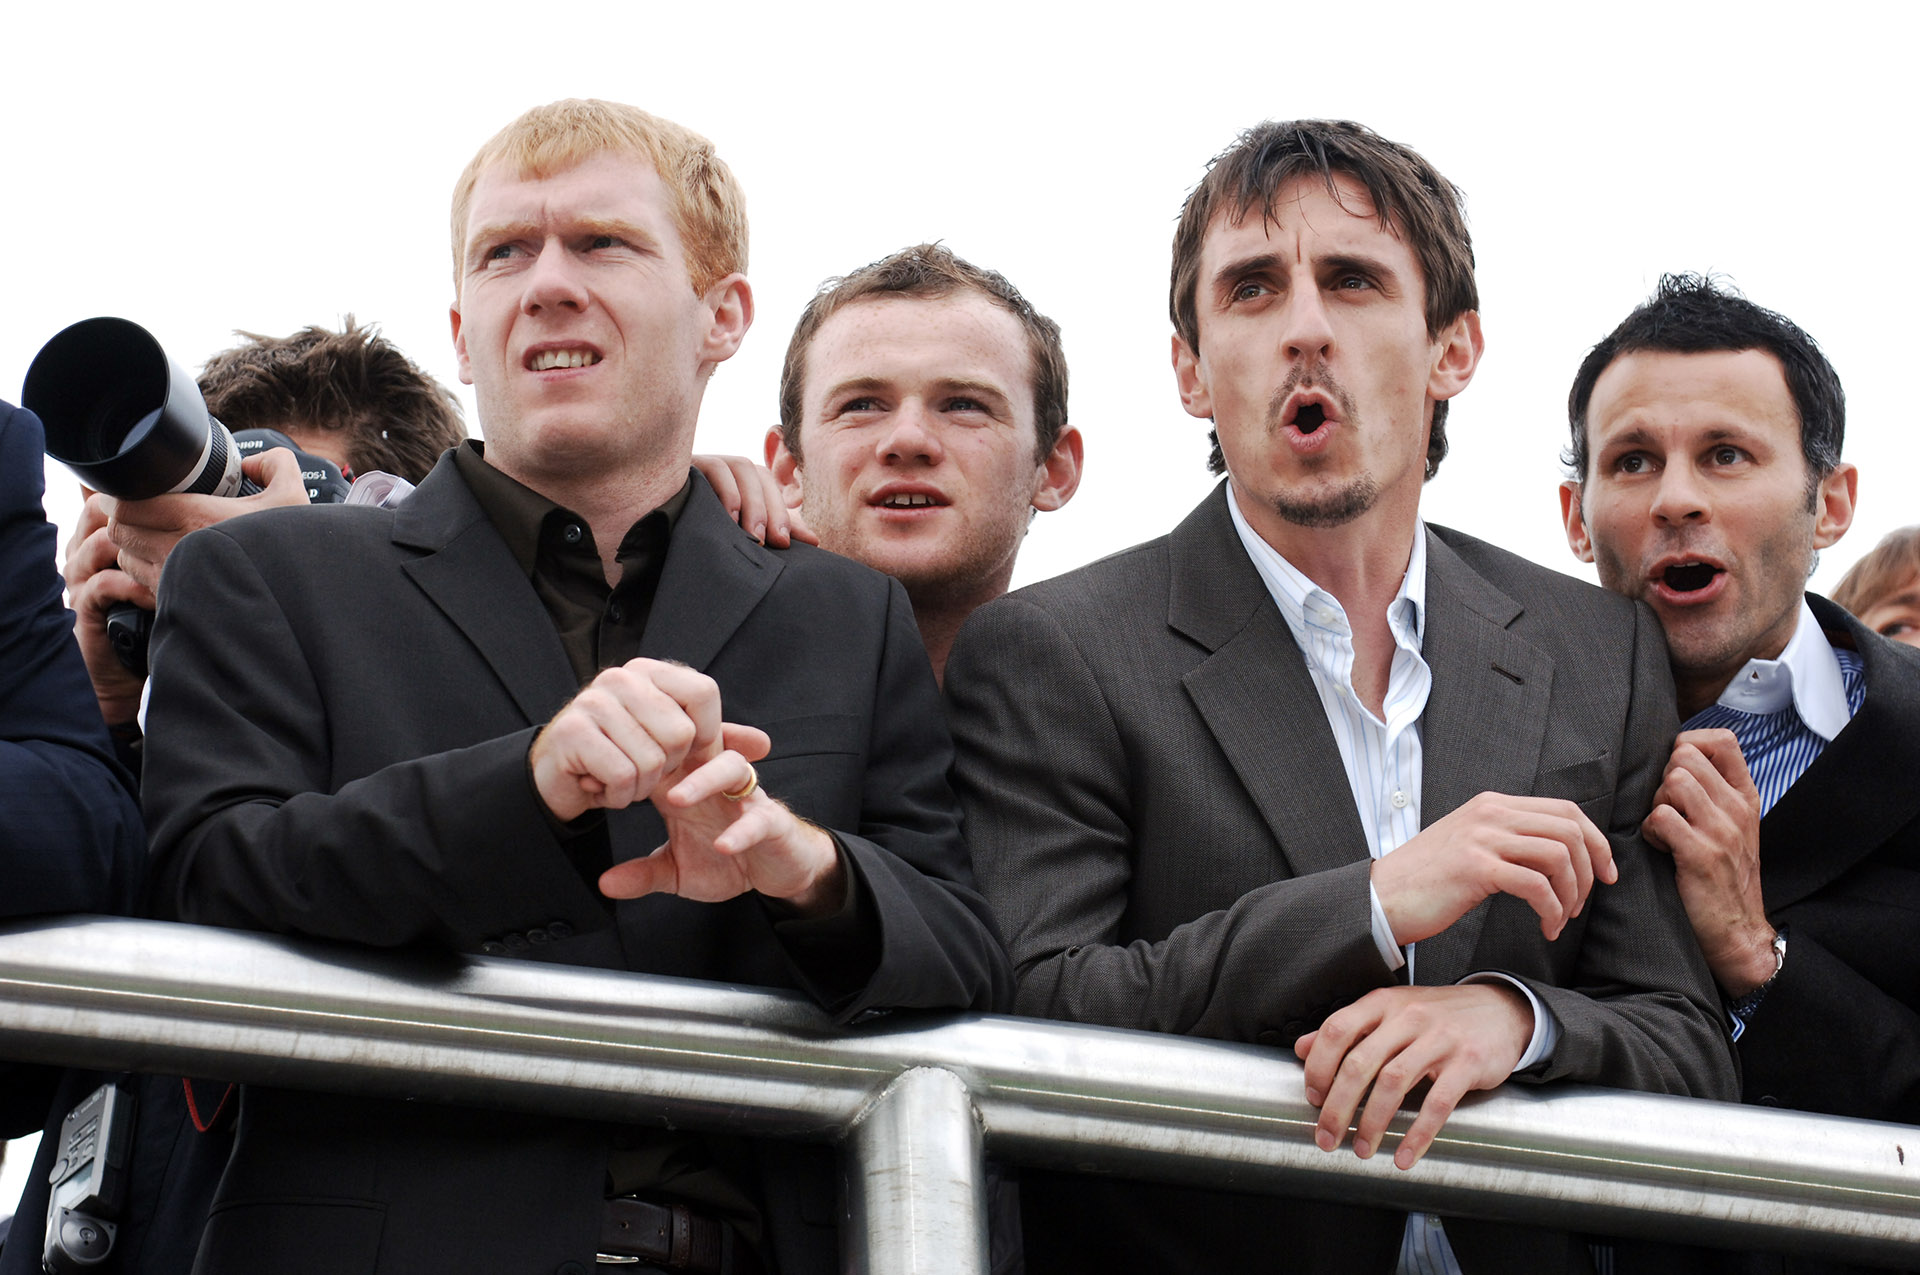 Press Photograph of Manchester United Footballers Wayne Rooney, Ryan Giggs, Paul Scholes, Gary Neville at Aintree Racecourse Liverpool, Press Photographer Jon Parker Lee